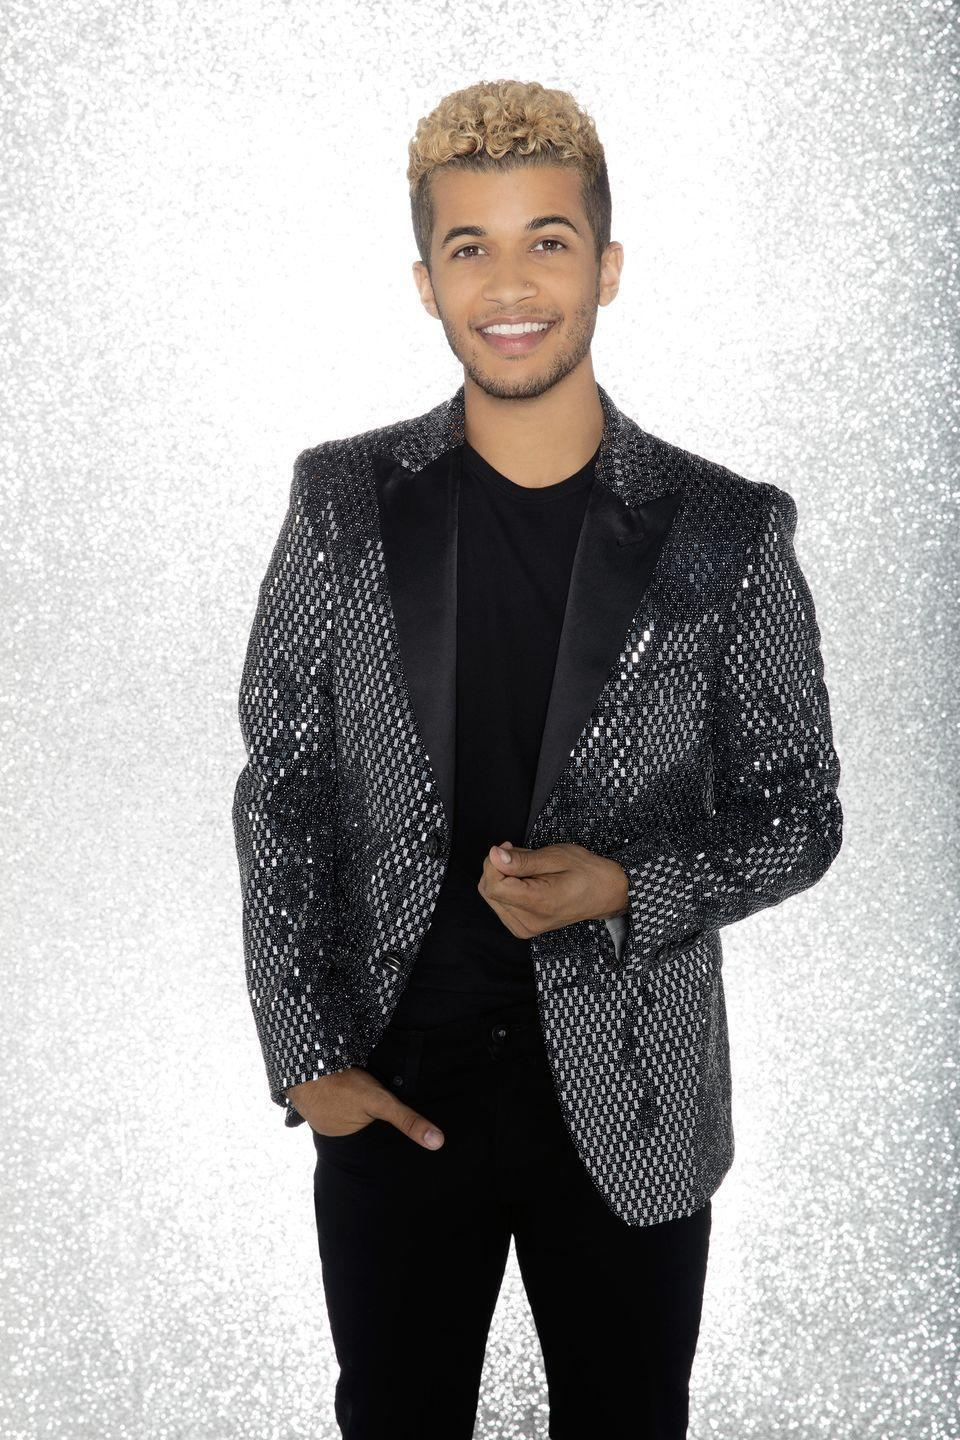 """<p>The <em>Dancing with the Stars</em> alum was adopted by his maternal grandmother and step-grandfather.</p><p>""""It's because of their unrelenting, unconditional support and love I'm able to have the life that I have now and do everything I love to do and that starts with the selflessness and love of my mom and dad,"""" he <a href=""""https://people.com/tv/dwts-jordan-fisher-adoption-interview/"""" rel=""""nofollow noopener"""" target=""""_blank"""" data-ylk=""""slk:told"""" class=""""link rapid-noclick-resp"""">told </a><em><a href=""""https://people.com/tv/dwts-jordan-fisher-adoption-interview/"""" rel=""""nofollow noopener"""" target=""""_blank"""" data-ylk=""""slk:People"""" class=""""link rapid-noclick-resp"""">People</a></em>.</p><p><a href=""""https://www.youtube.com/watch?v=lpF6P4pyUME"""" rel=""""nofollow noopener"""" target=""""_blank"""" data-ylk=""""slk:MORE: Jordan Fisher from Rent Live Sings Moana, Hamilton, and More Hit Musical Songs"""" class=""""link rapid-noclick-resp""""><strong>MORE:</strong> Jordan Fisher from <em>Rent Live</em> Sings <em>Moana</em>, <em>Hamilton</em>, and More Hit Musical Songs</a></p>"""